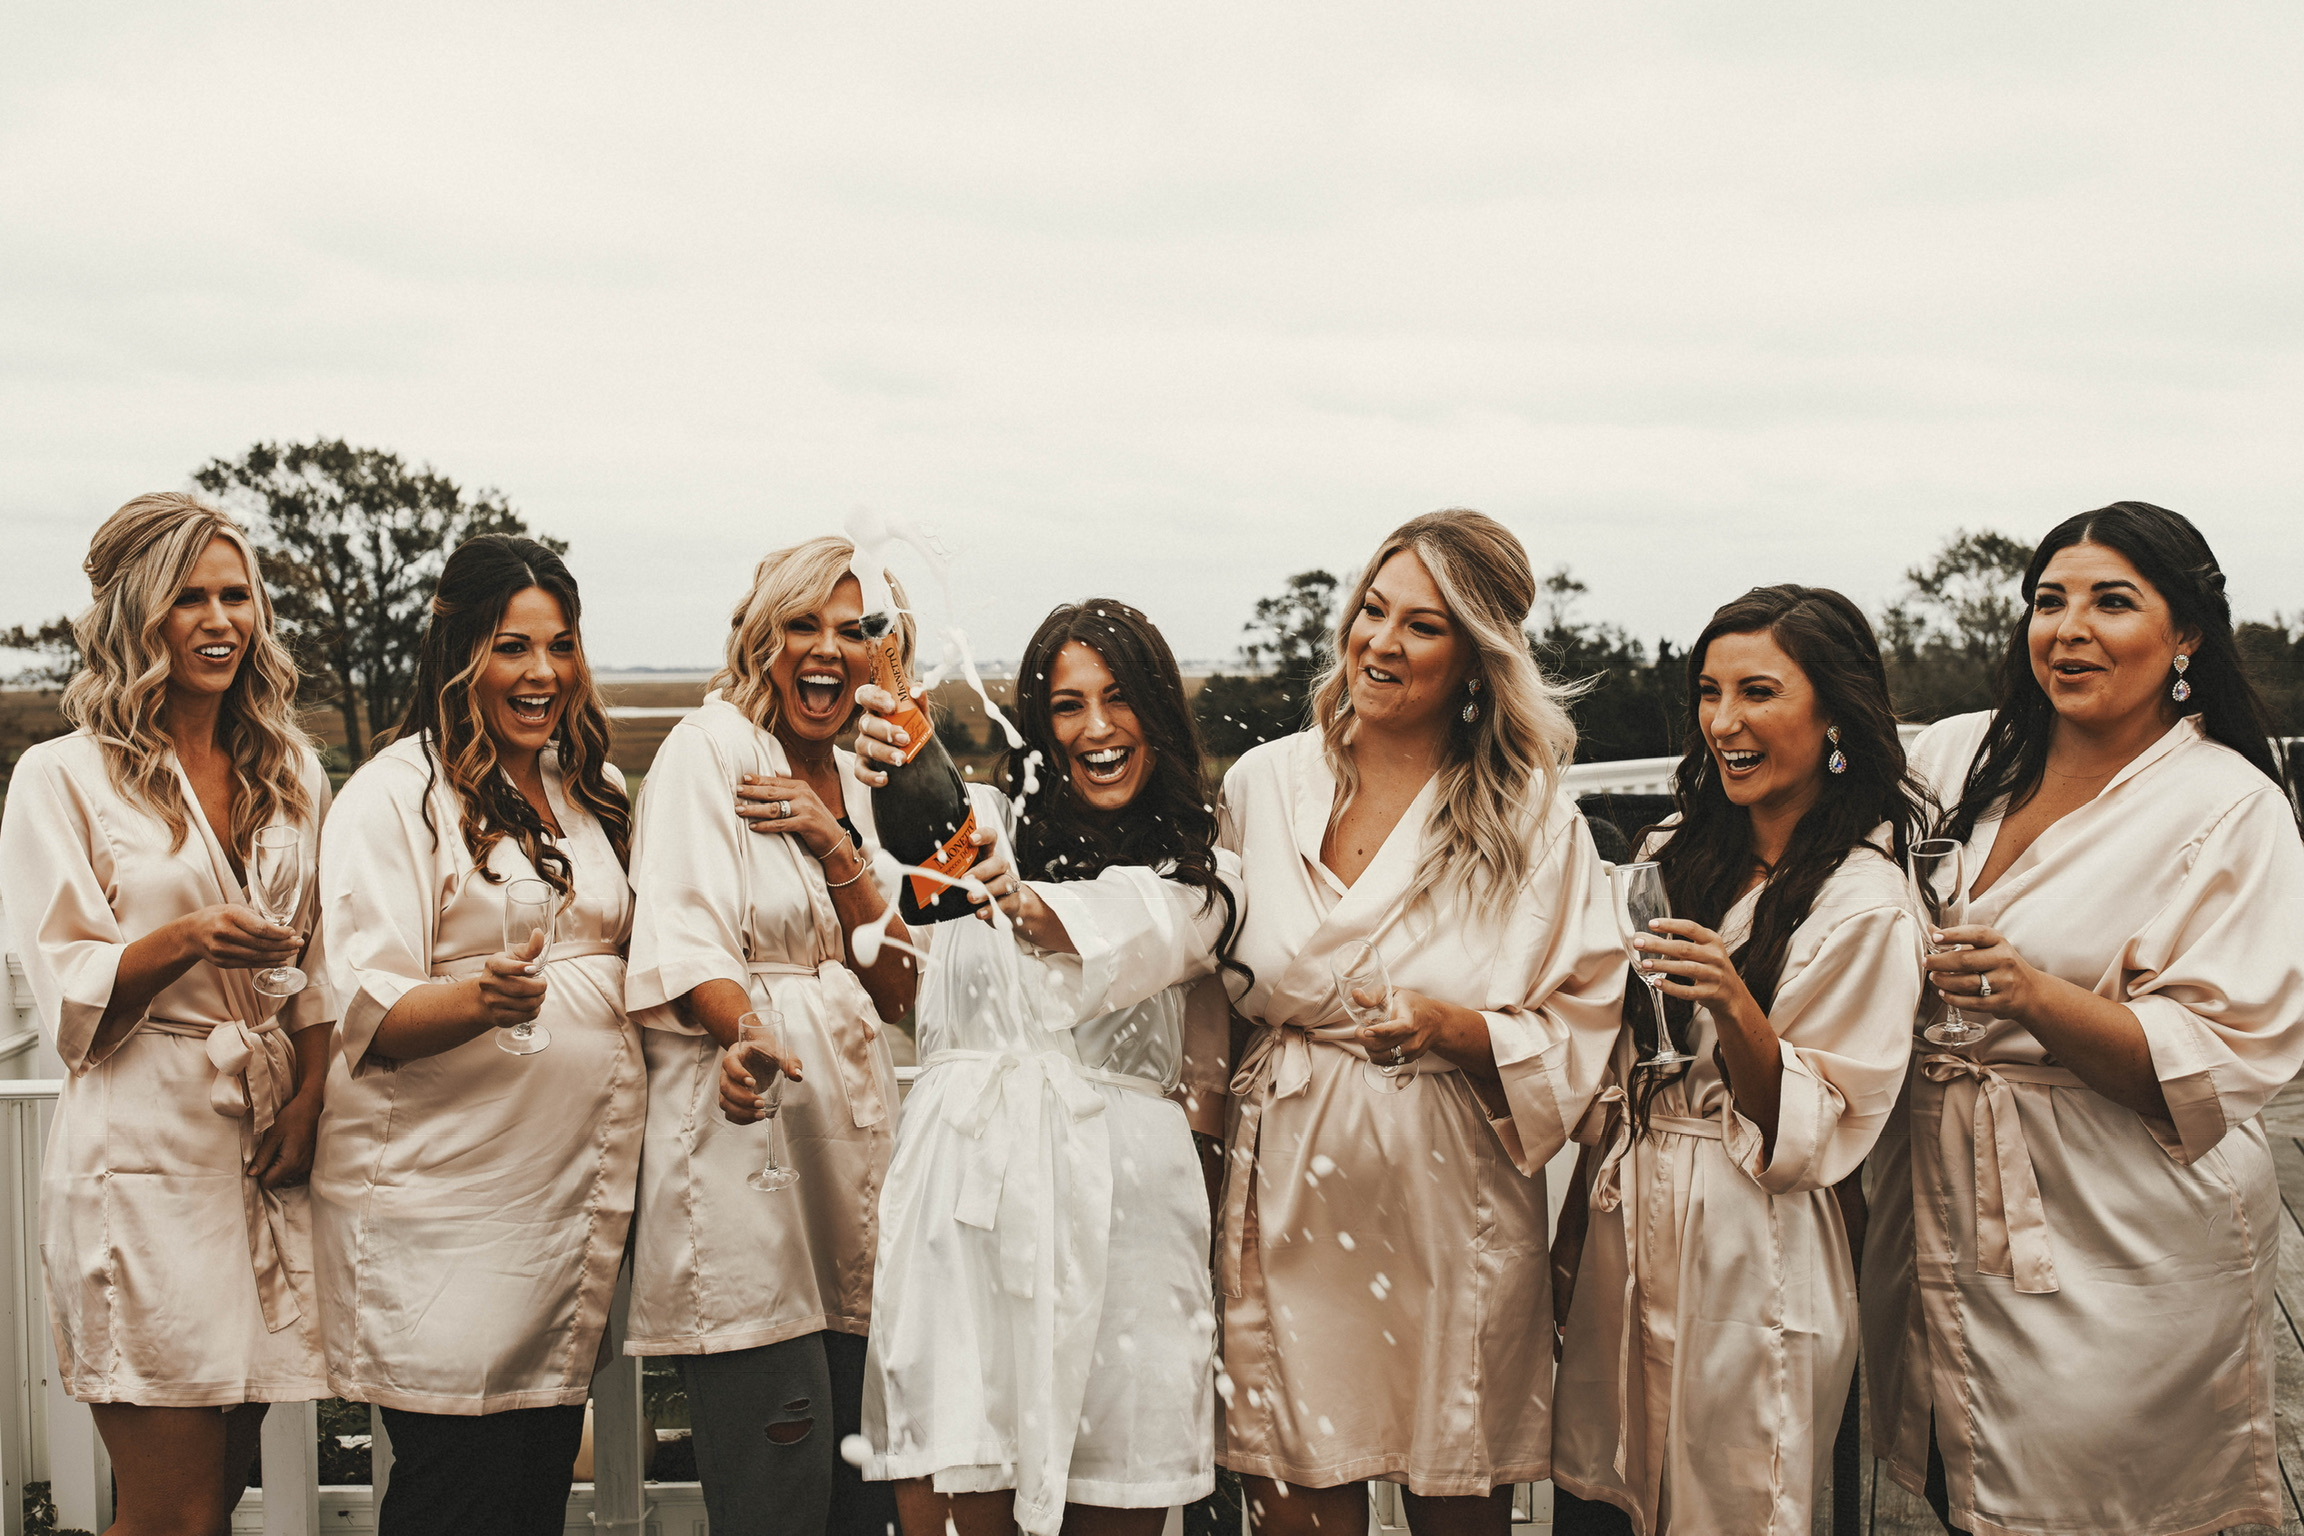 All of our Wedding Vendors: Reviewed | Pine Barren Beauty | wedding photos, wedding photography, wedding photography ideas, bridal party photos, bridal party champagne pop